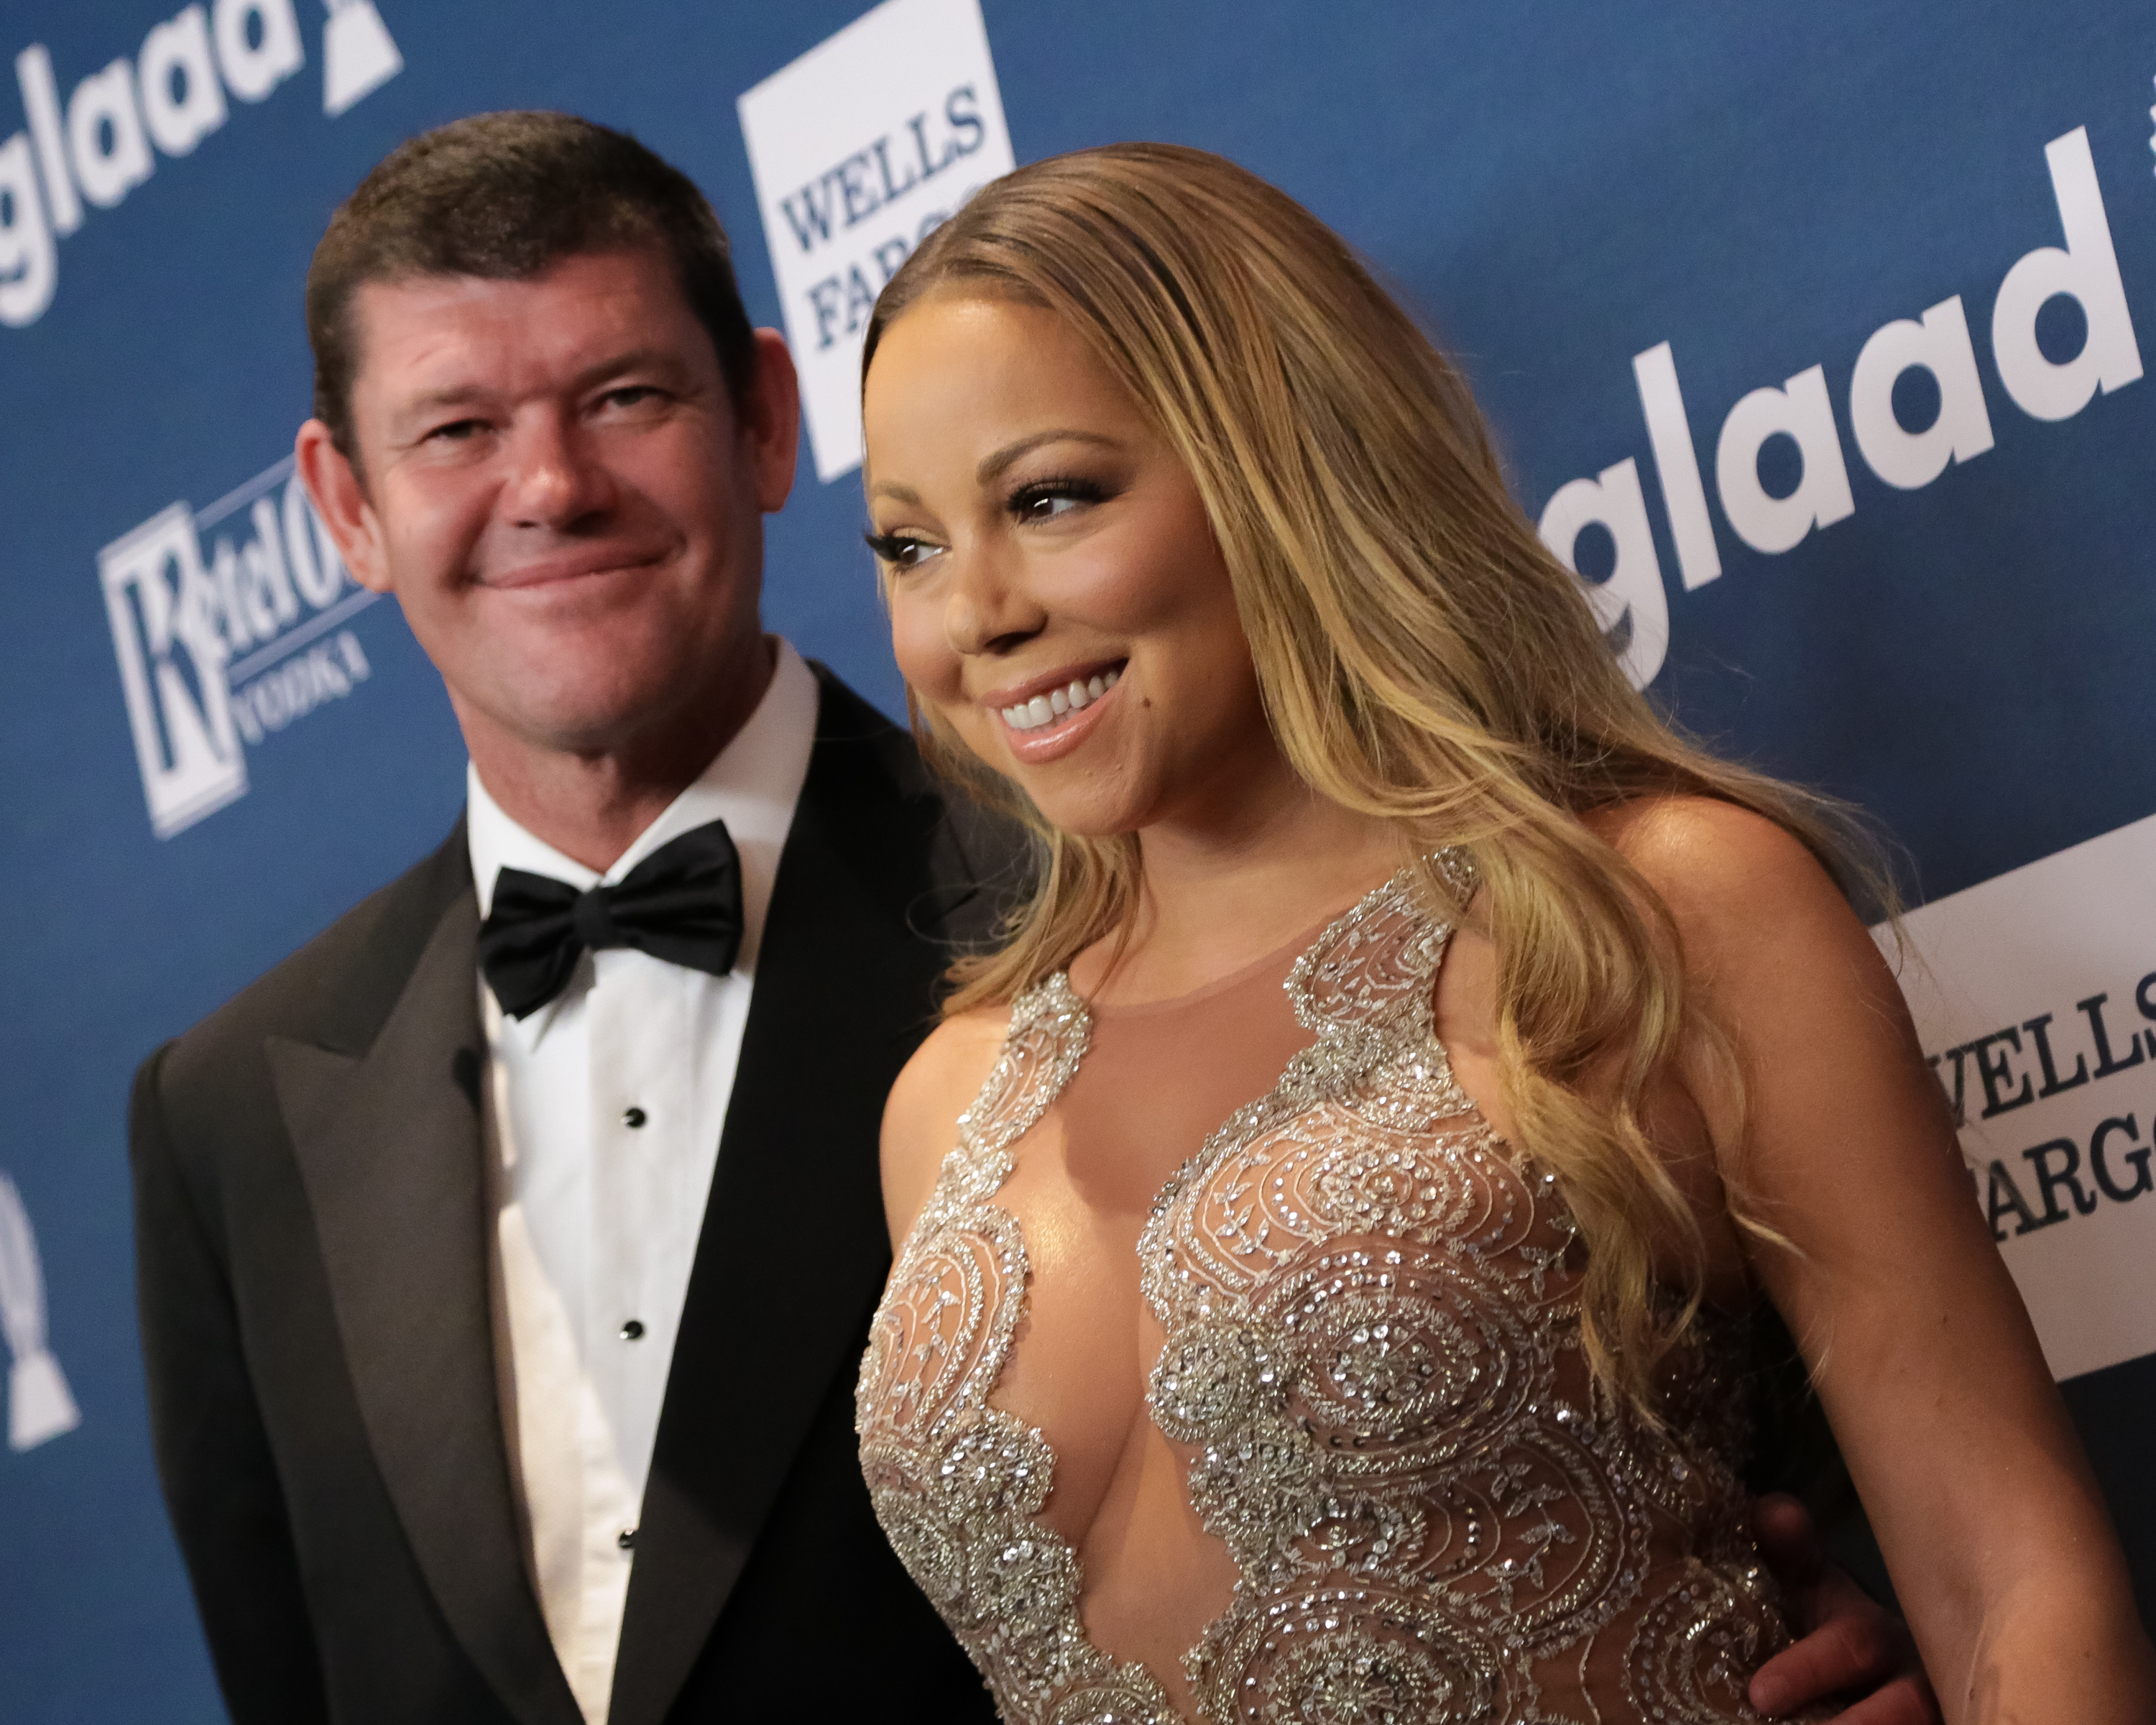 Mariah Carey and James Packer in happier times (Picture: FilmMagic)